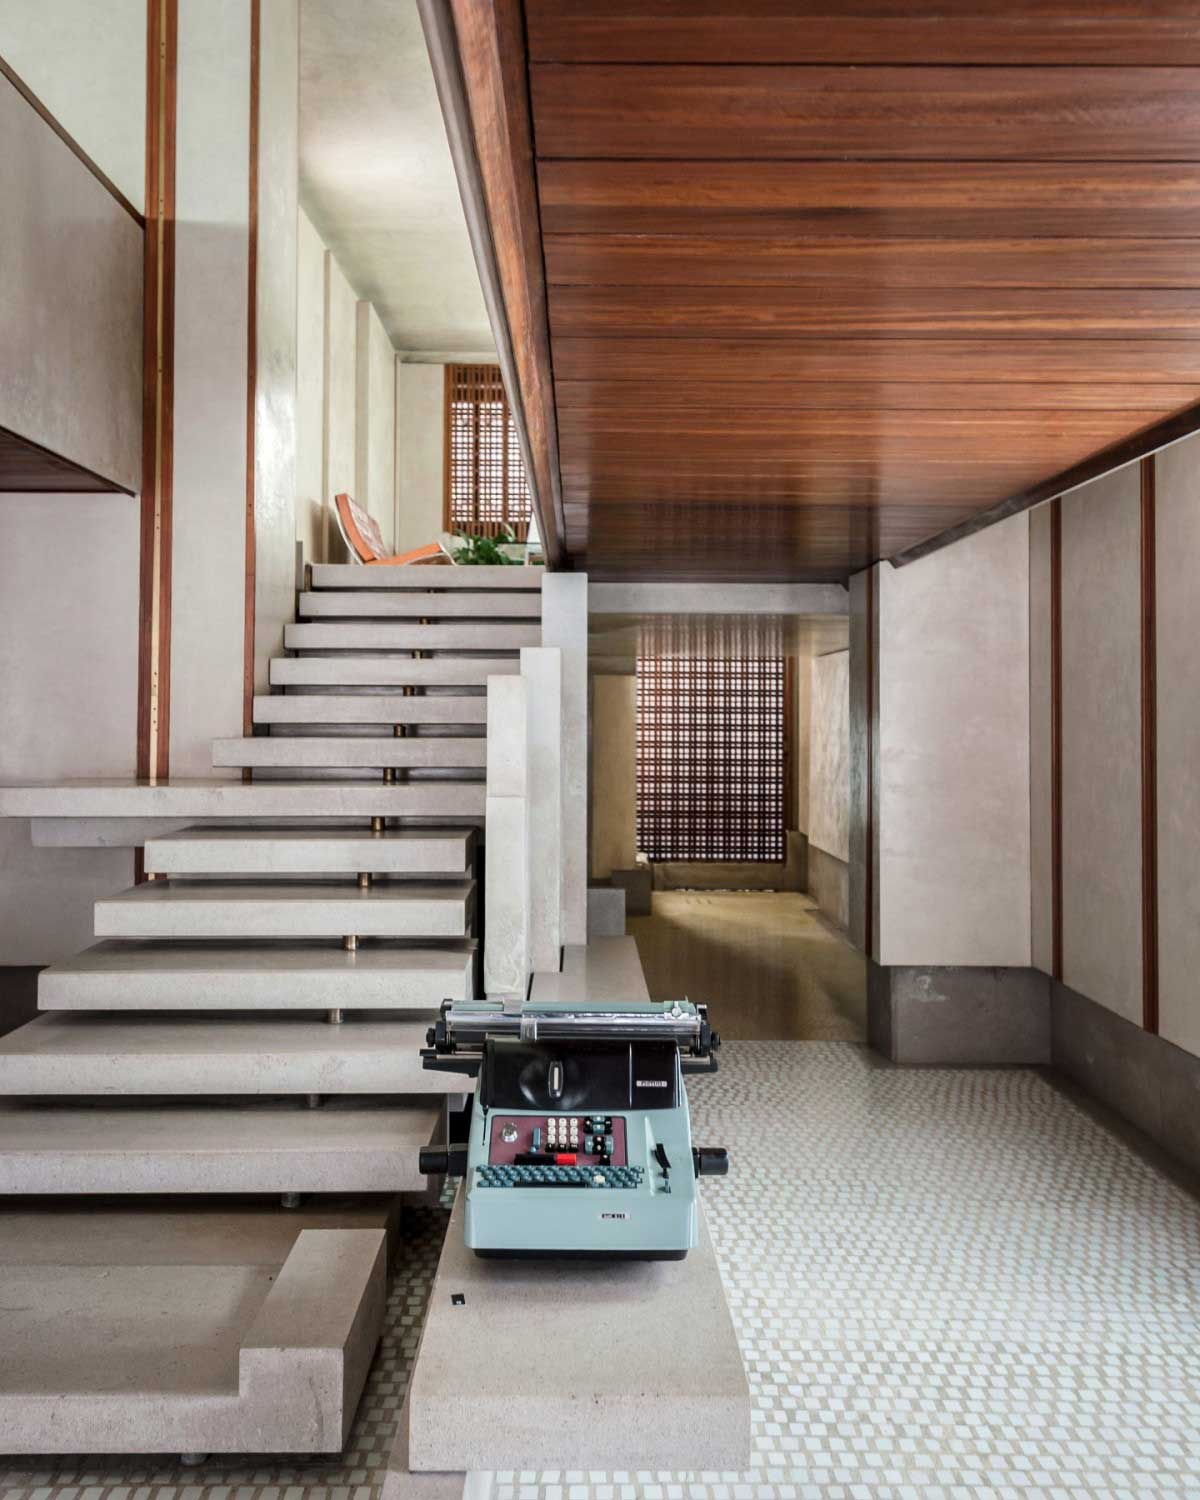 Olivetti Showroom in Venice by Carlo Scarpa. Photo by George X. Lin | Yellowtrace